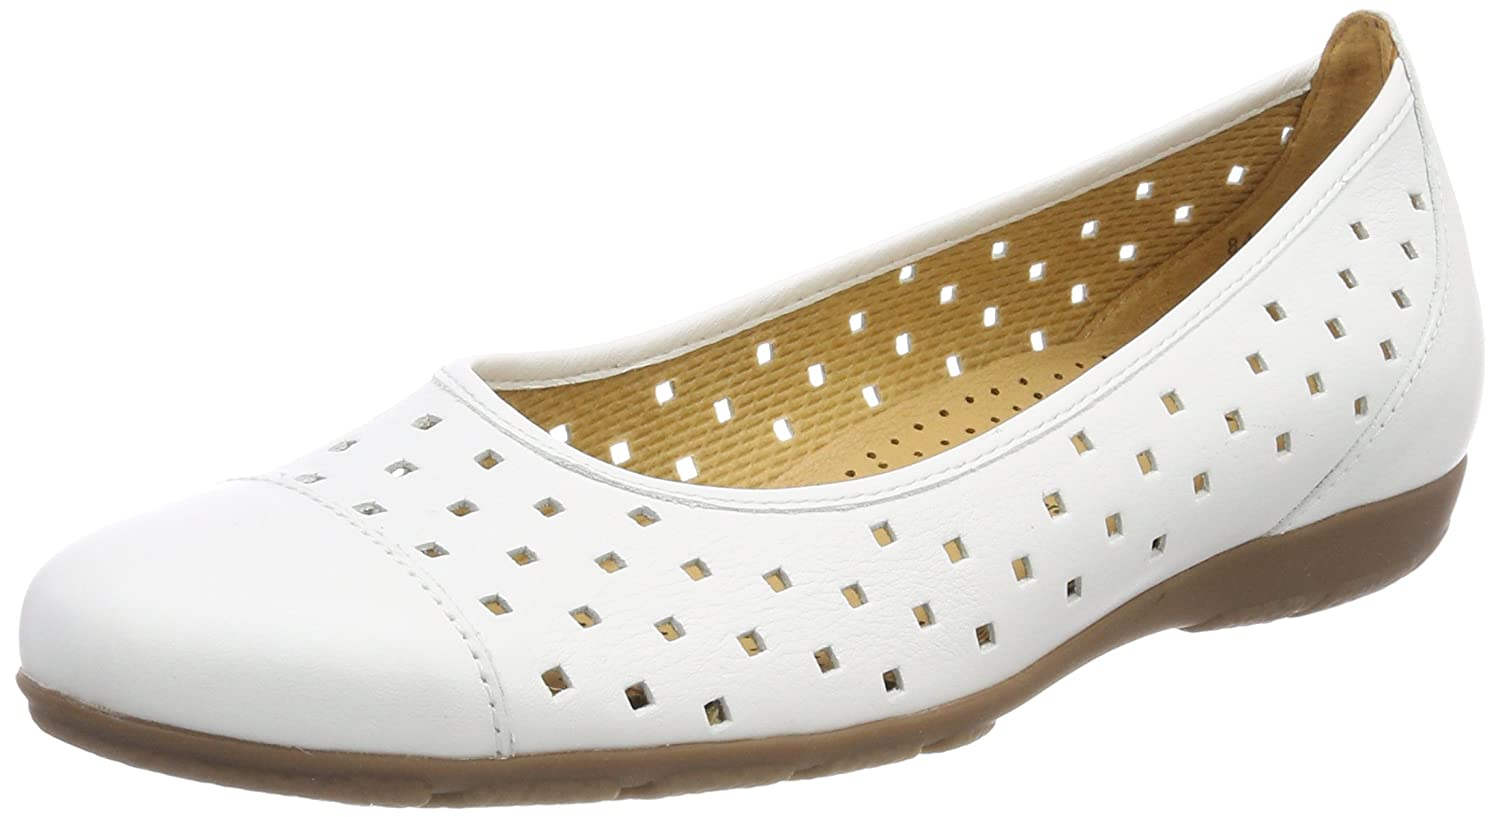 Gabor Shoes B071FC815Y Gabor Casual, Blanc Ballerines Femme Shoes Blanc (Weiss) 3d3c031 - latesttechnology.space